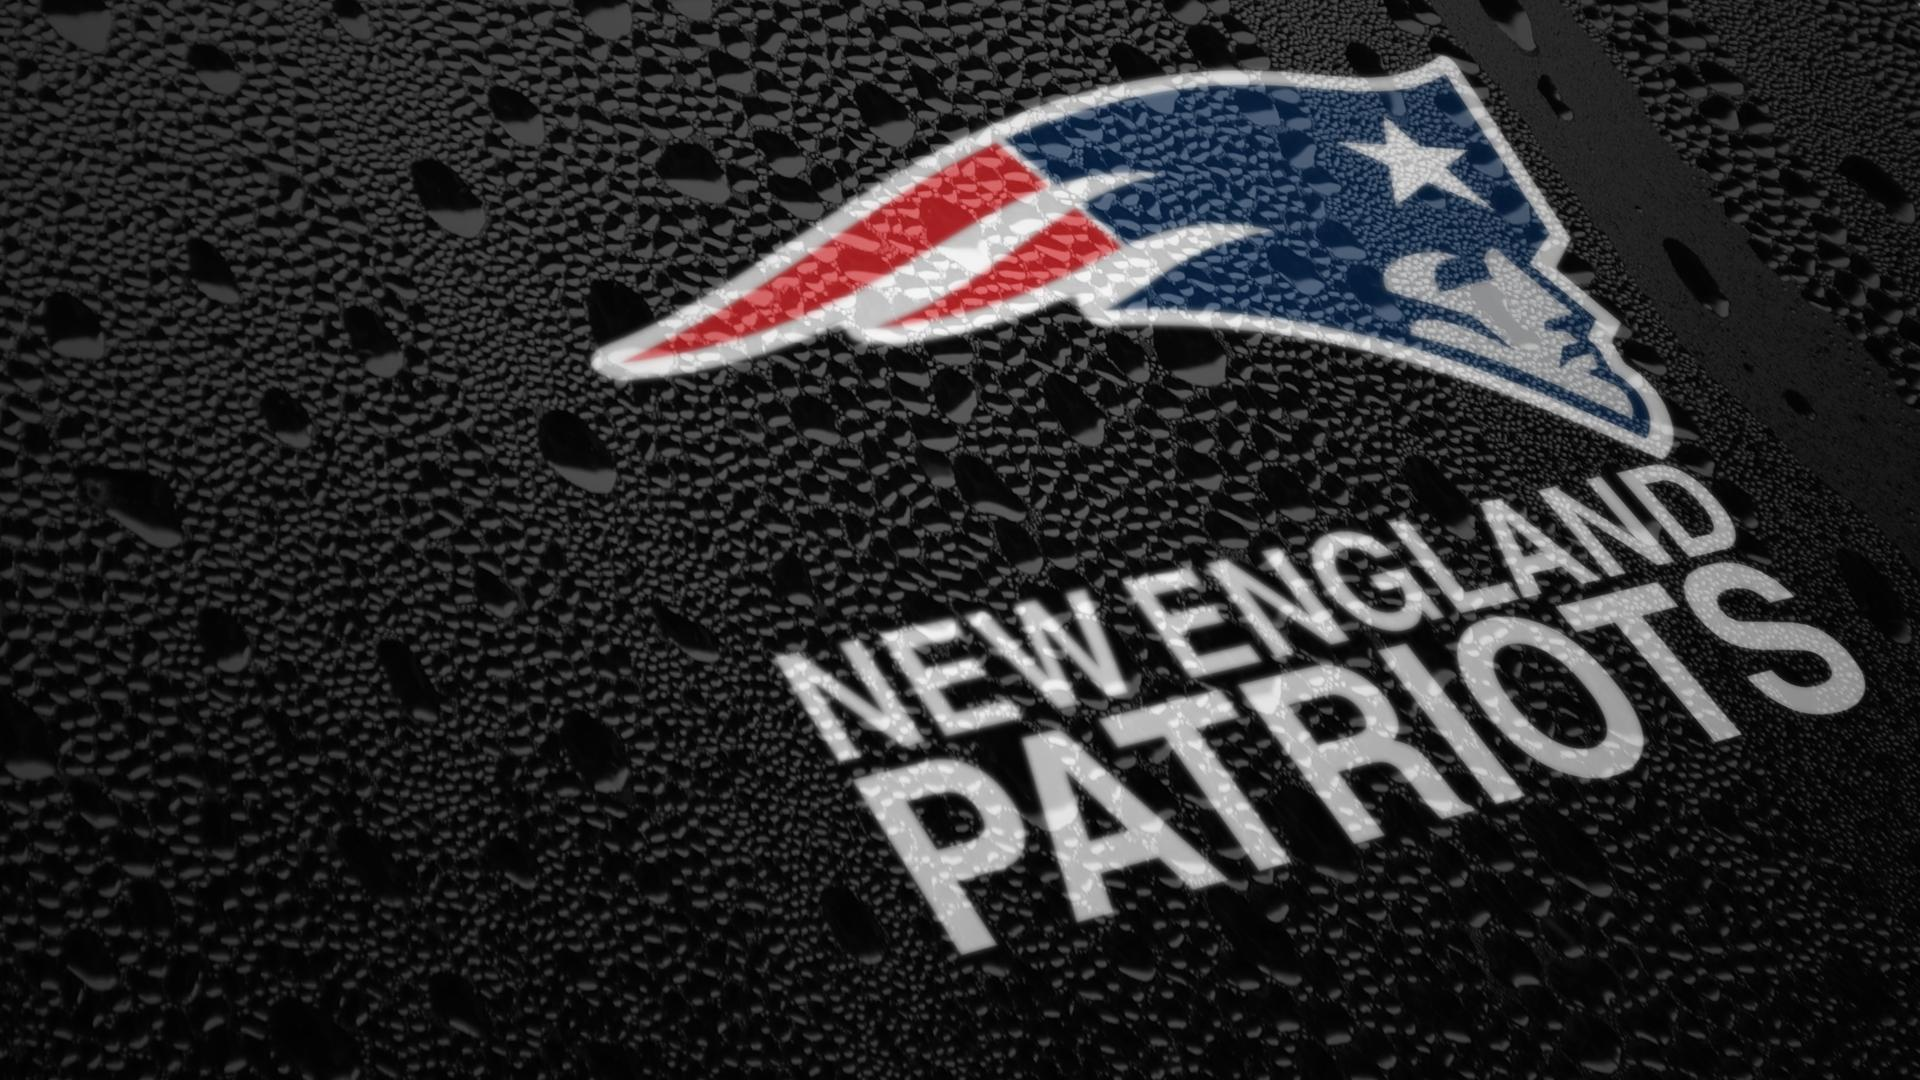 New England Patriots HD Wallpaper